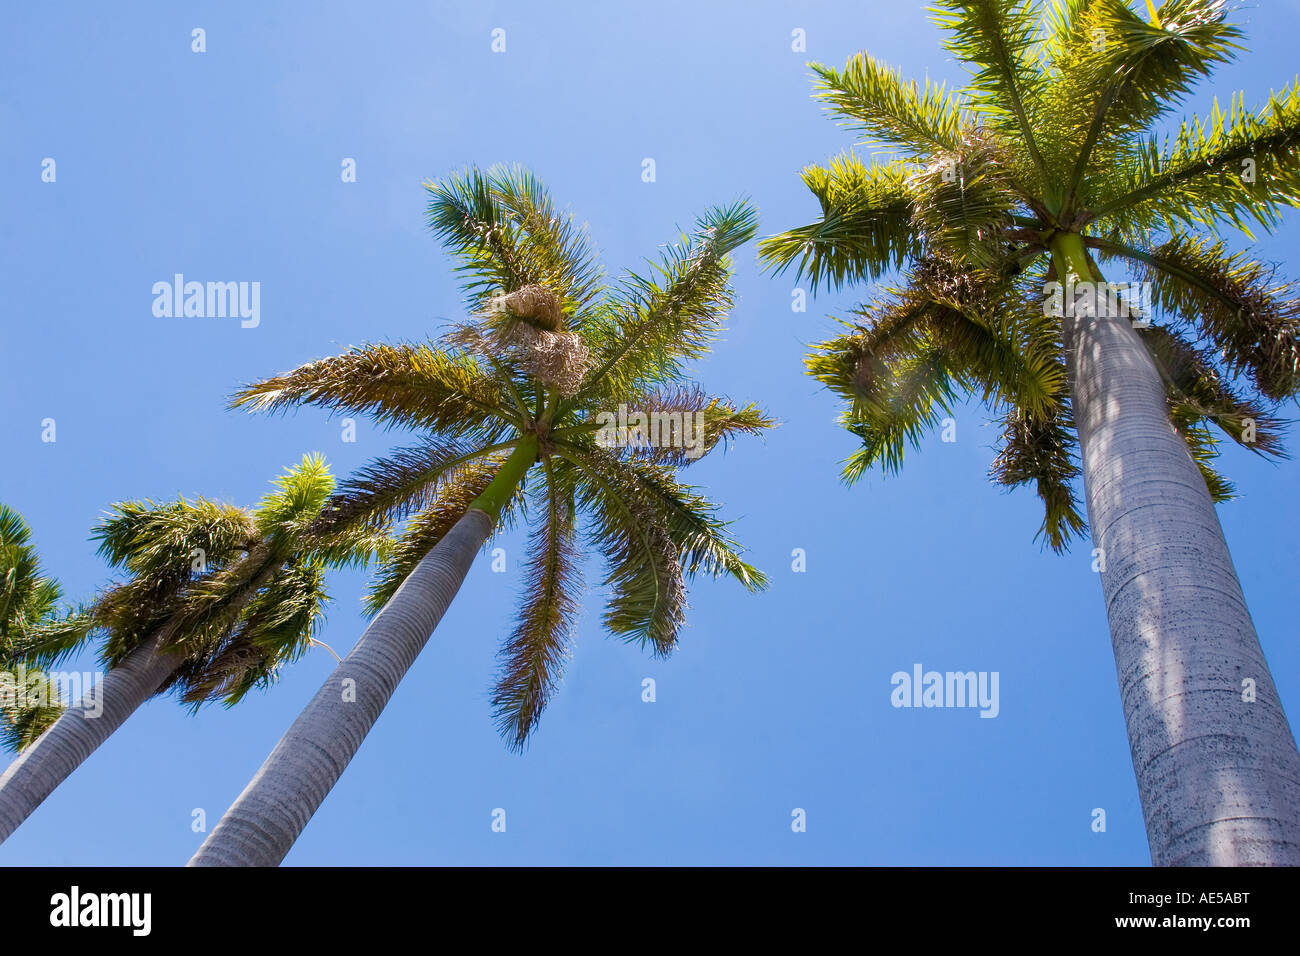 Tall palm trees in a row high overhead against a clear blue sky Miami Florida - Stock Image